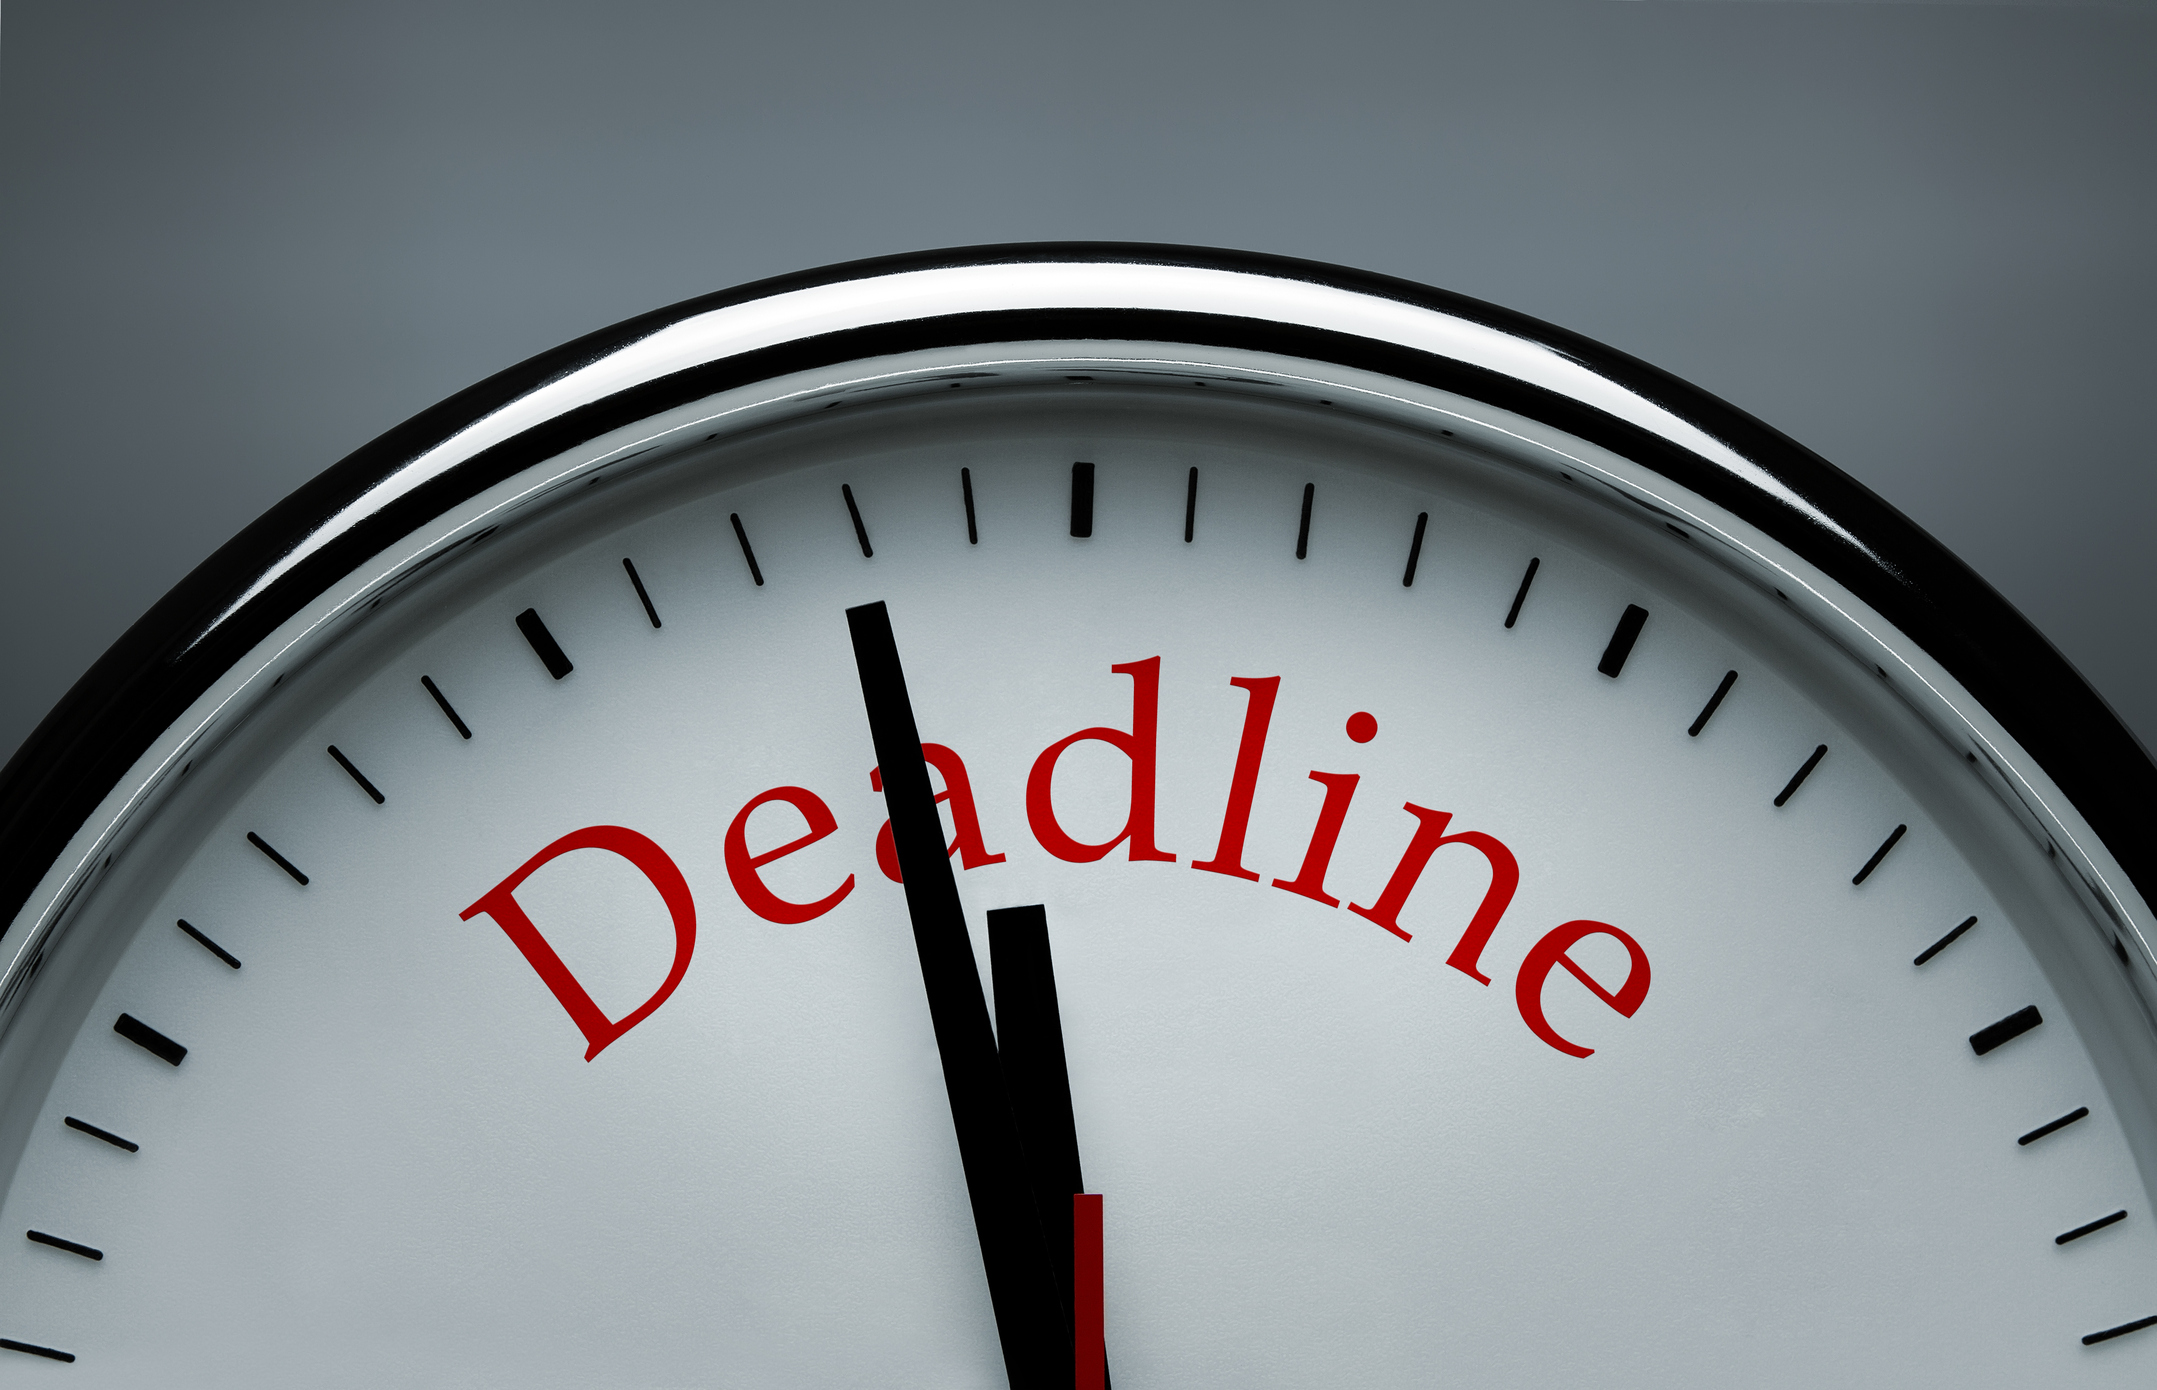 Why Wait? The Science Behind Procrastination